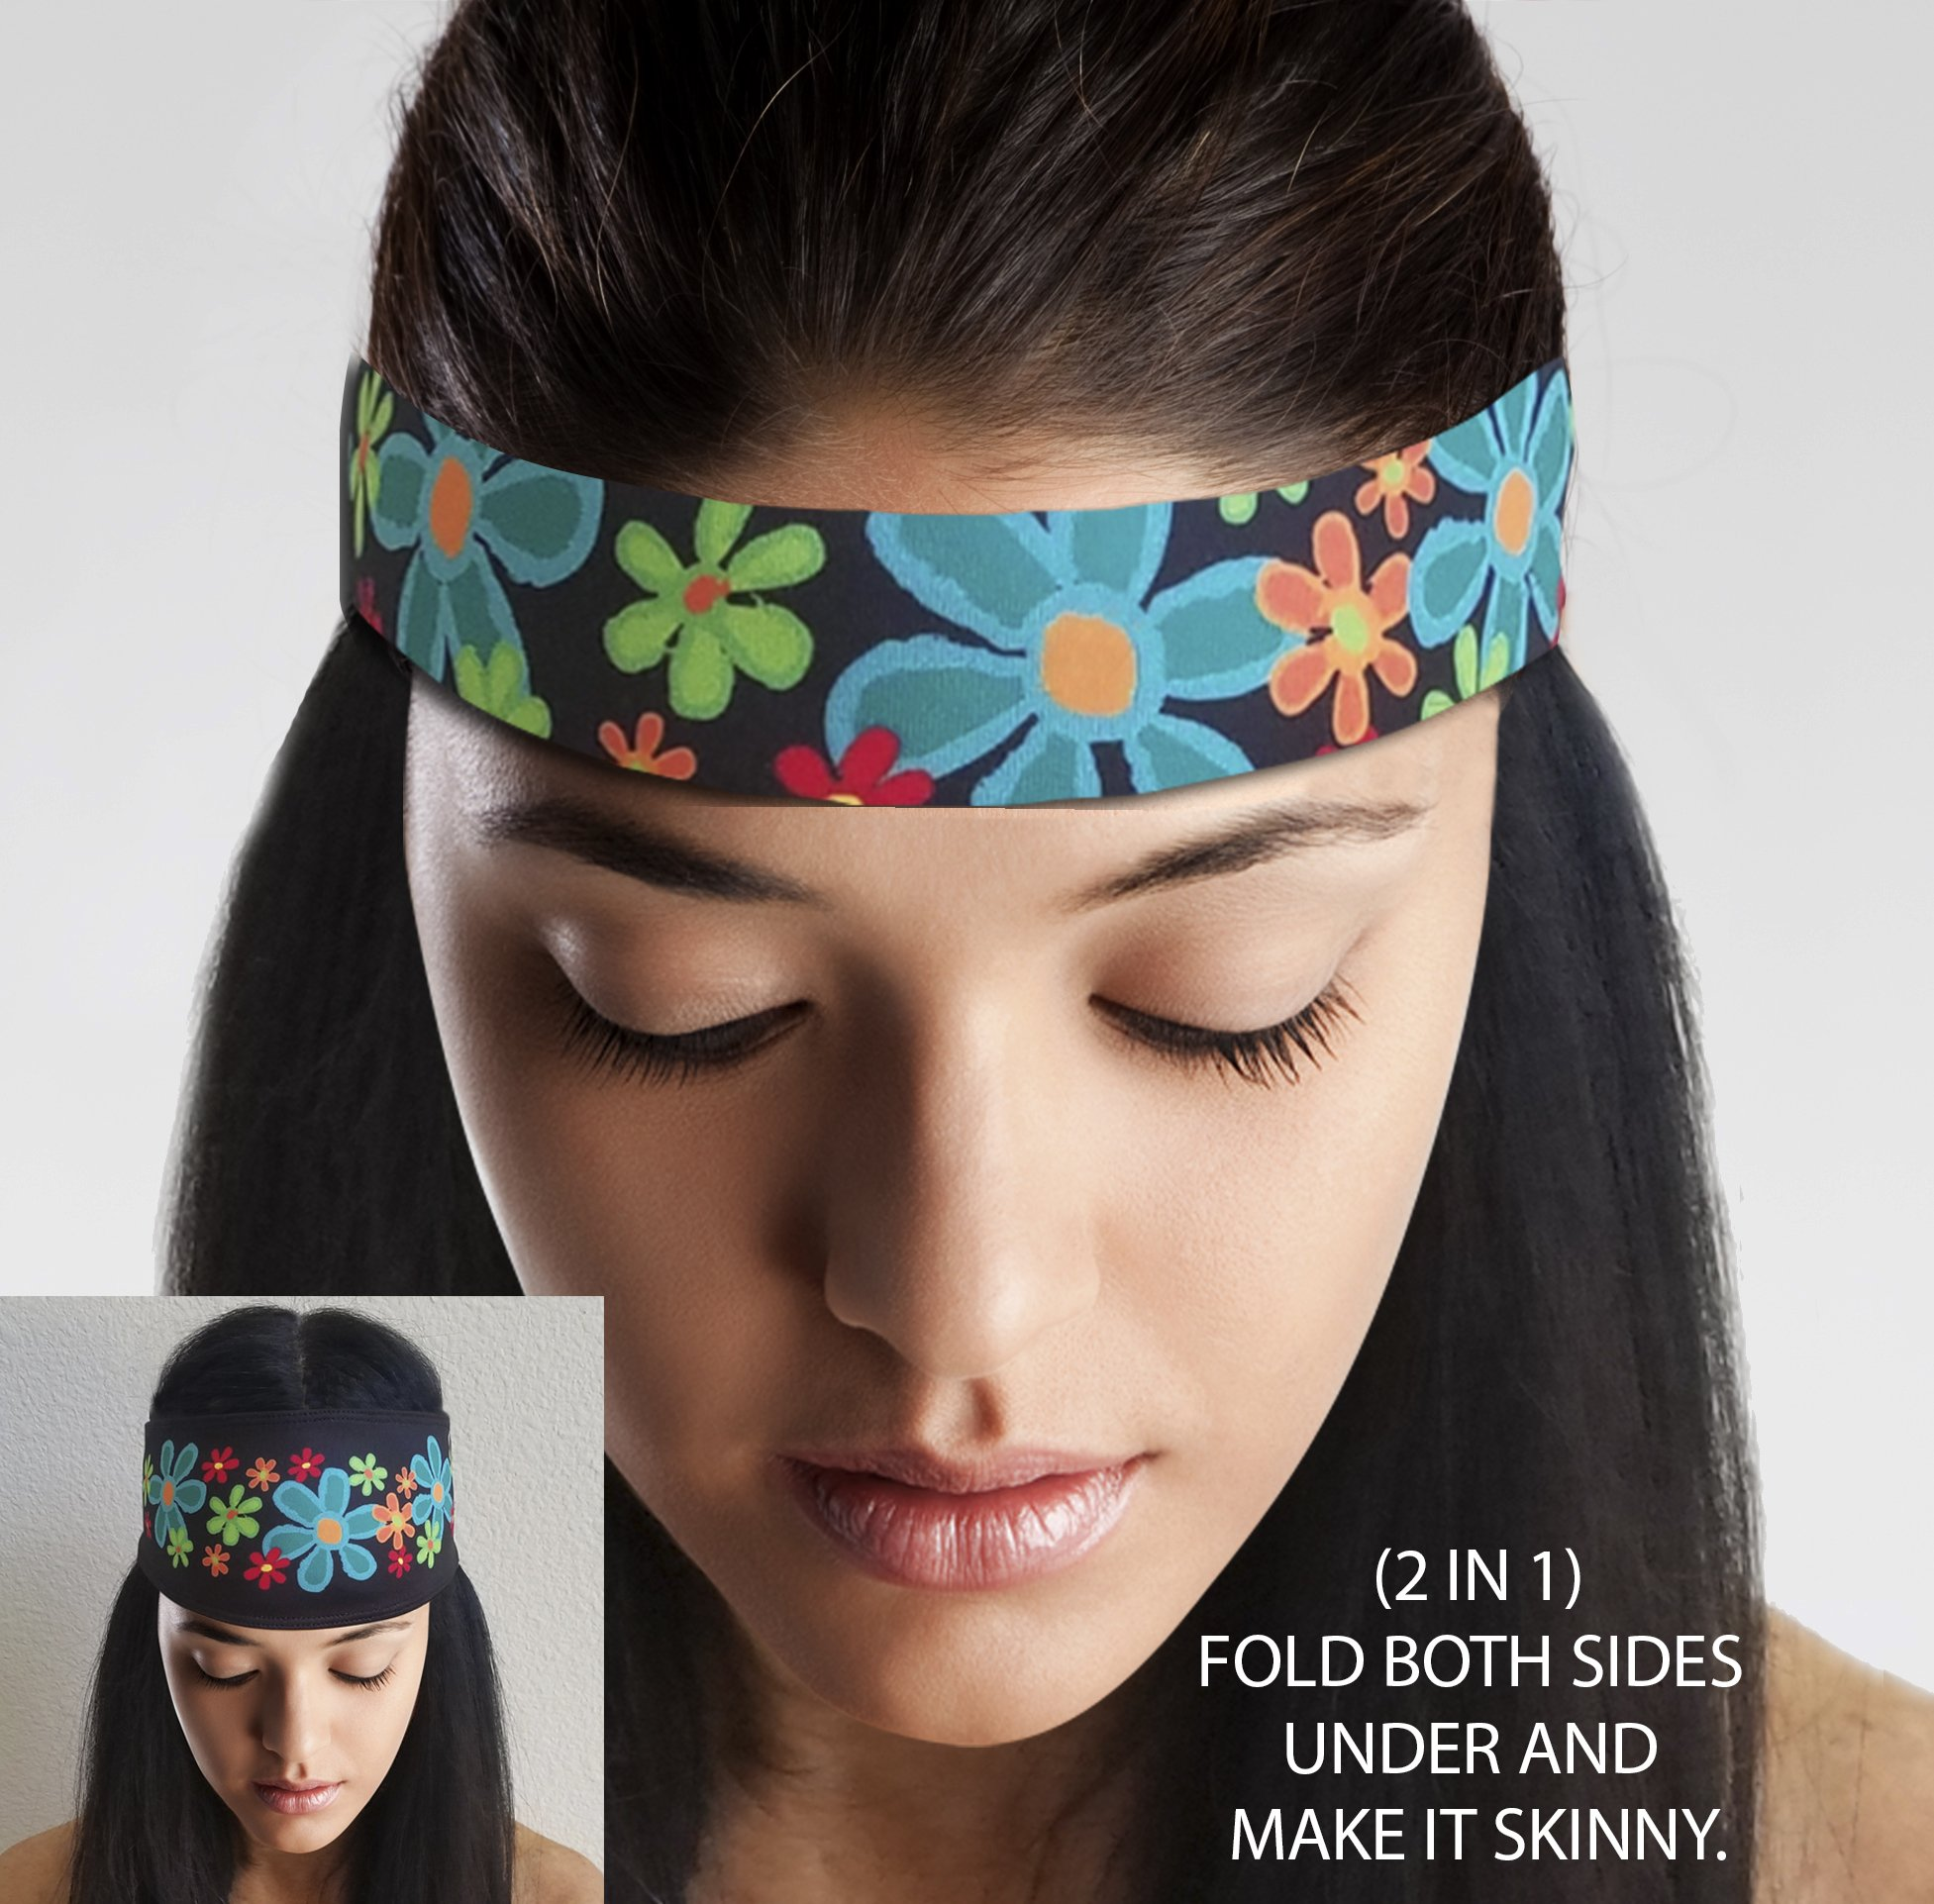 ArtSmackedByCherTM Wide Flower Sports Headband for Women. Moisture Wick Absorbs Sweat. A Polyester/Spandex Athletic Sportsband, Non-Slip, Cooling, Fashionable. Great for Gym, Running, Yoga, Crossfit. by ArtSmackedByCher(TM) (Image #4)